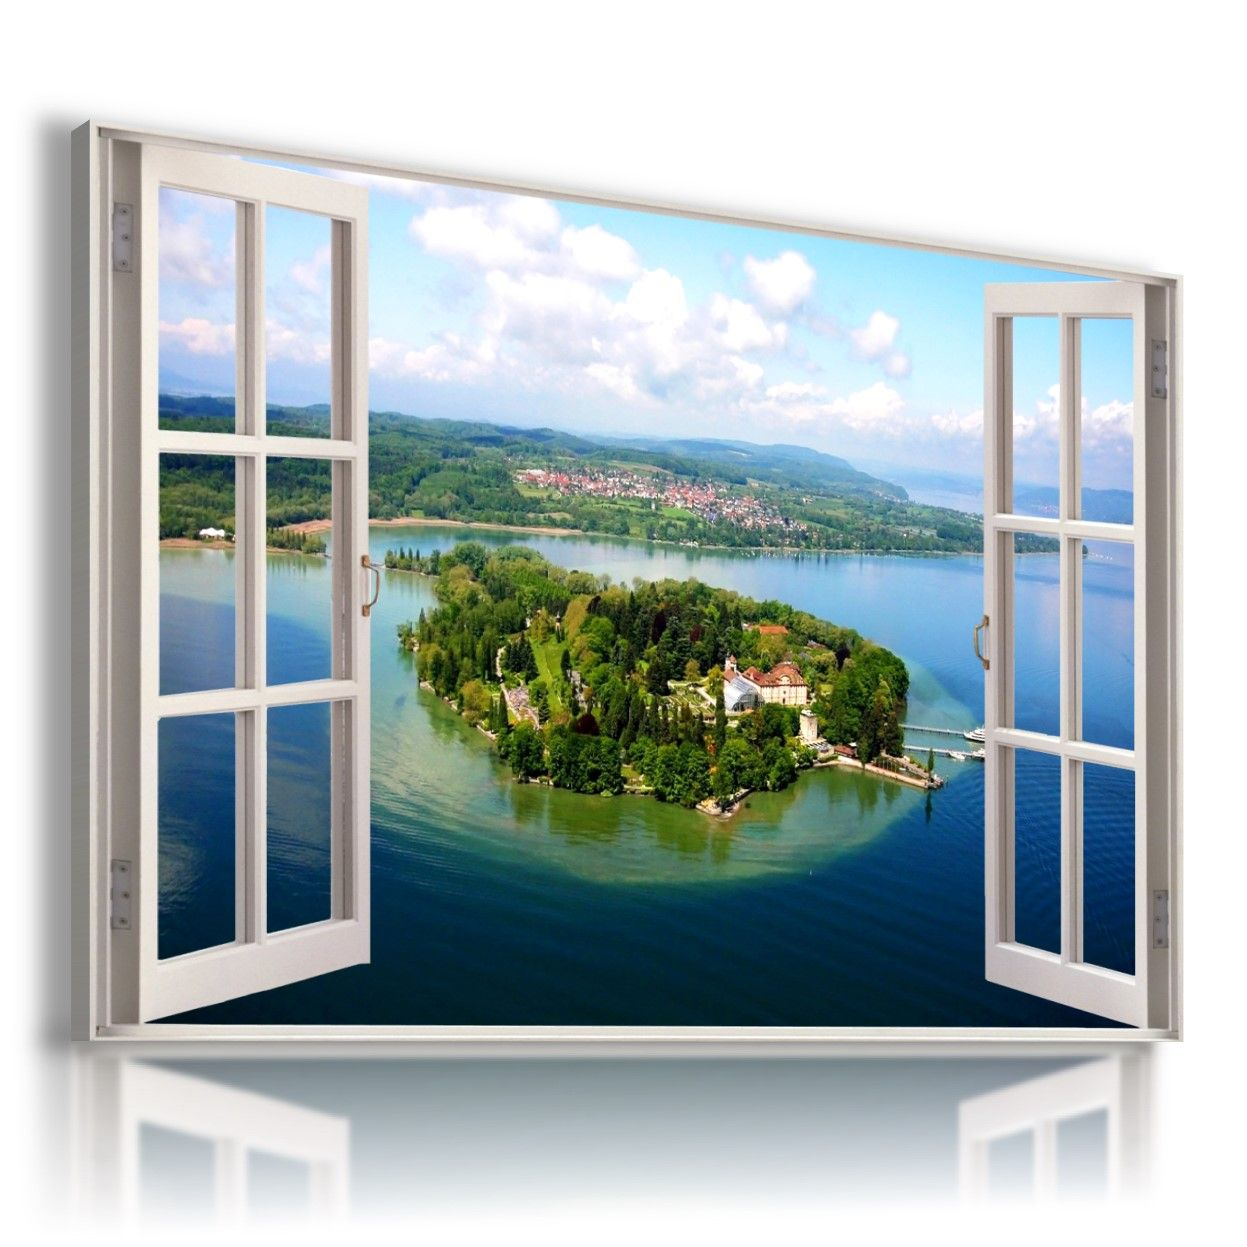 GREECE BEAUTIFUL TOWN 3D Window View Canvas Wall Art Picture W421  MATAGA .